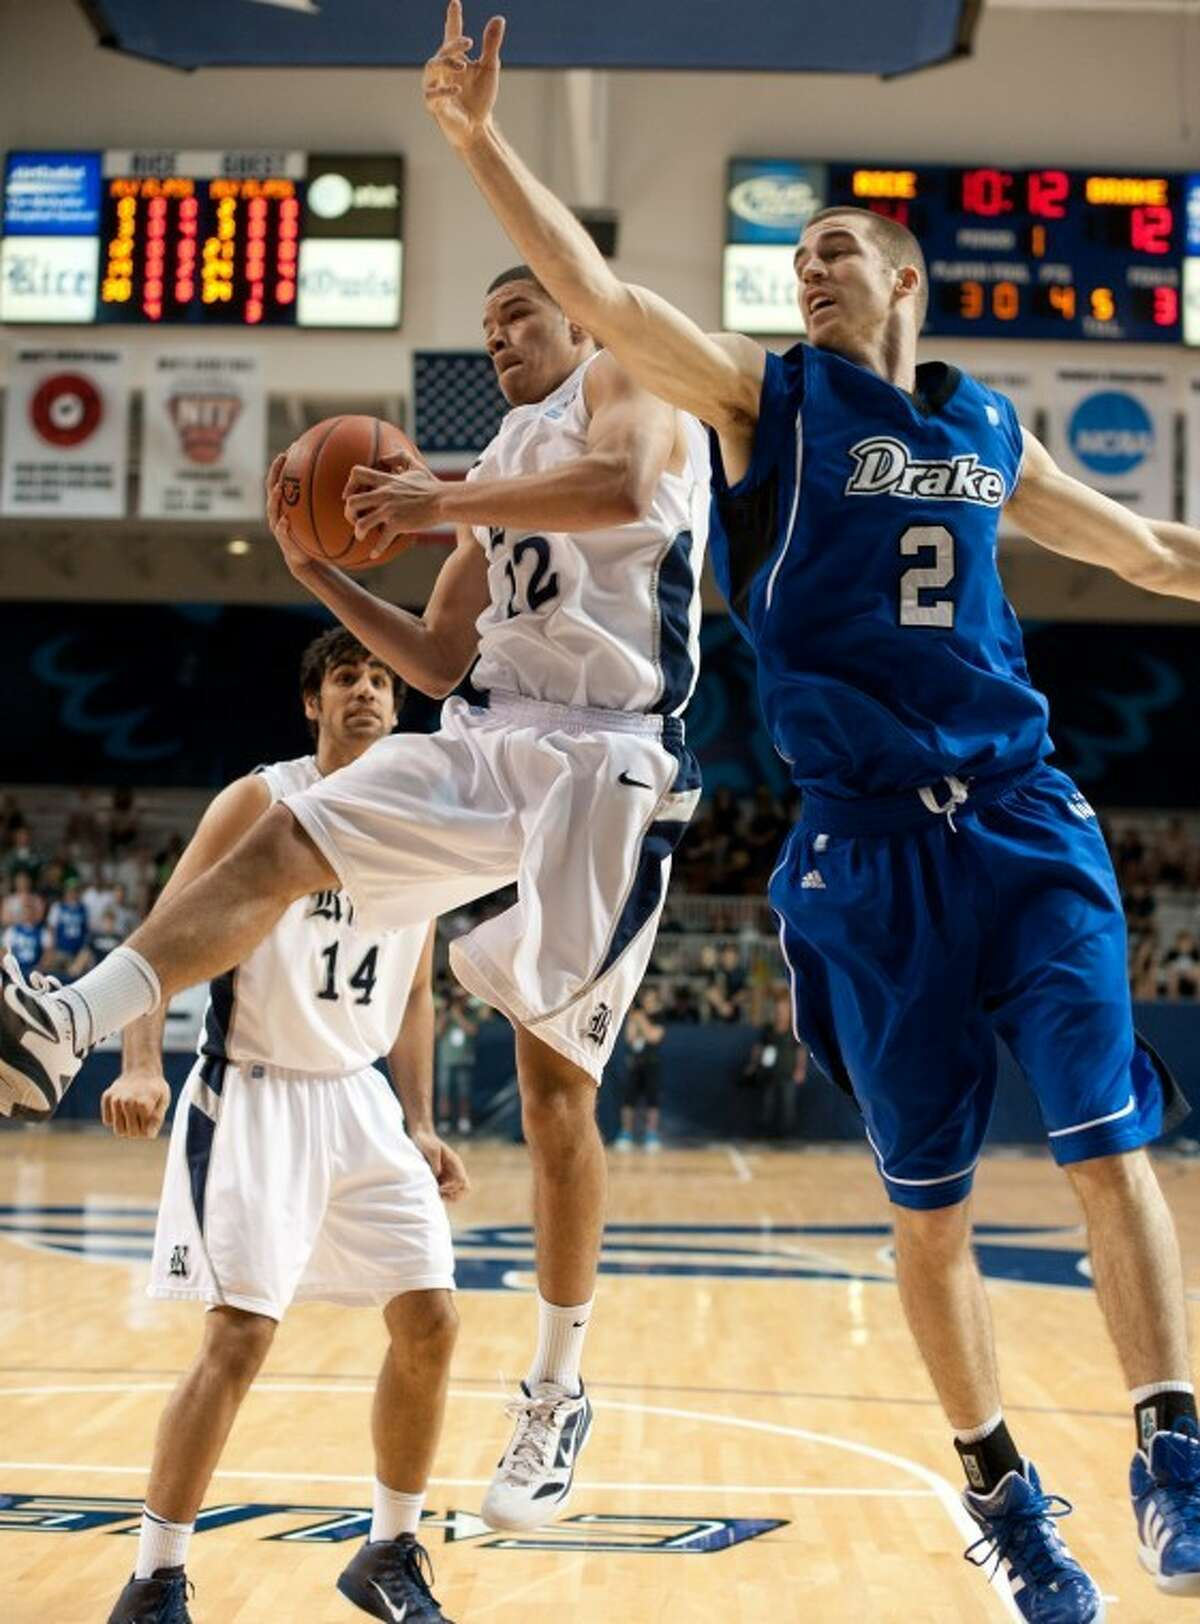 Jarelle Reischel (12) scored 10 points and Arsalan Kazemi (14) recorded 11 points and 13 rebounds to lead Rice past Drake and into the CIT quarterfinals. The Owls play at Oakland University at 6 p.m. Tuesday.